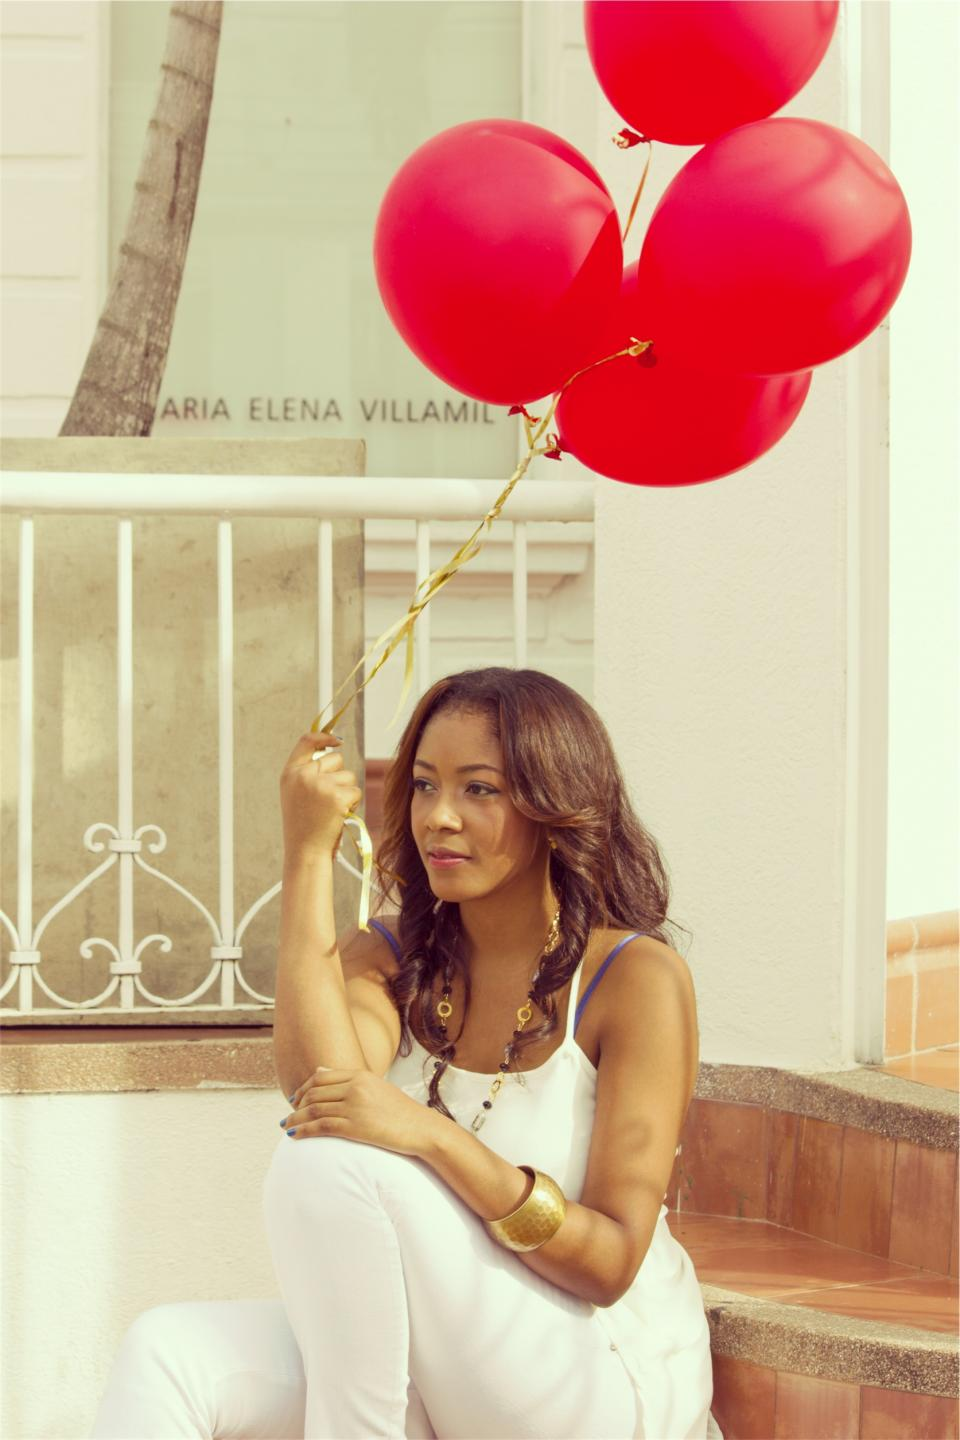 girl woman red balloons pretty beautiful people curls long hair fashion